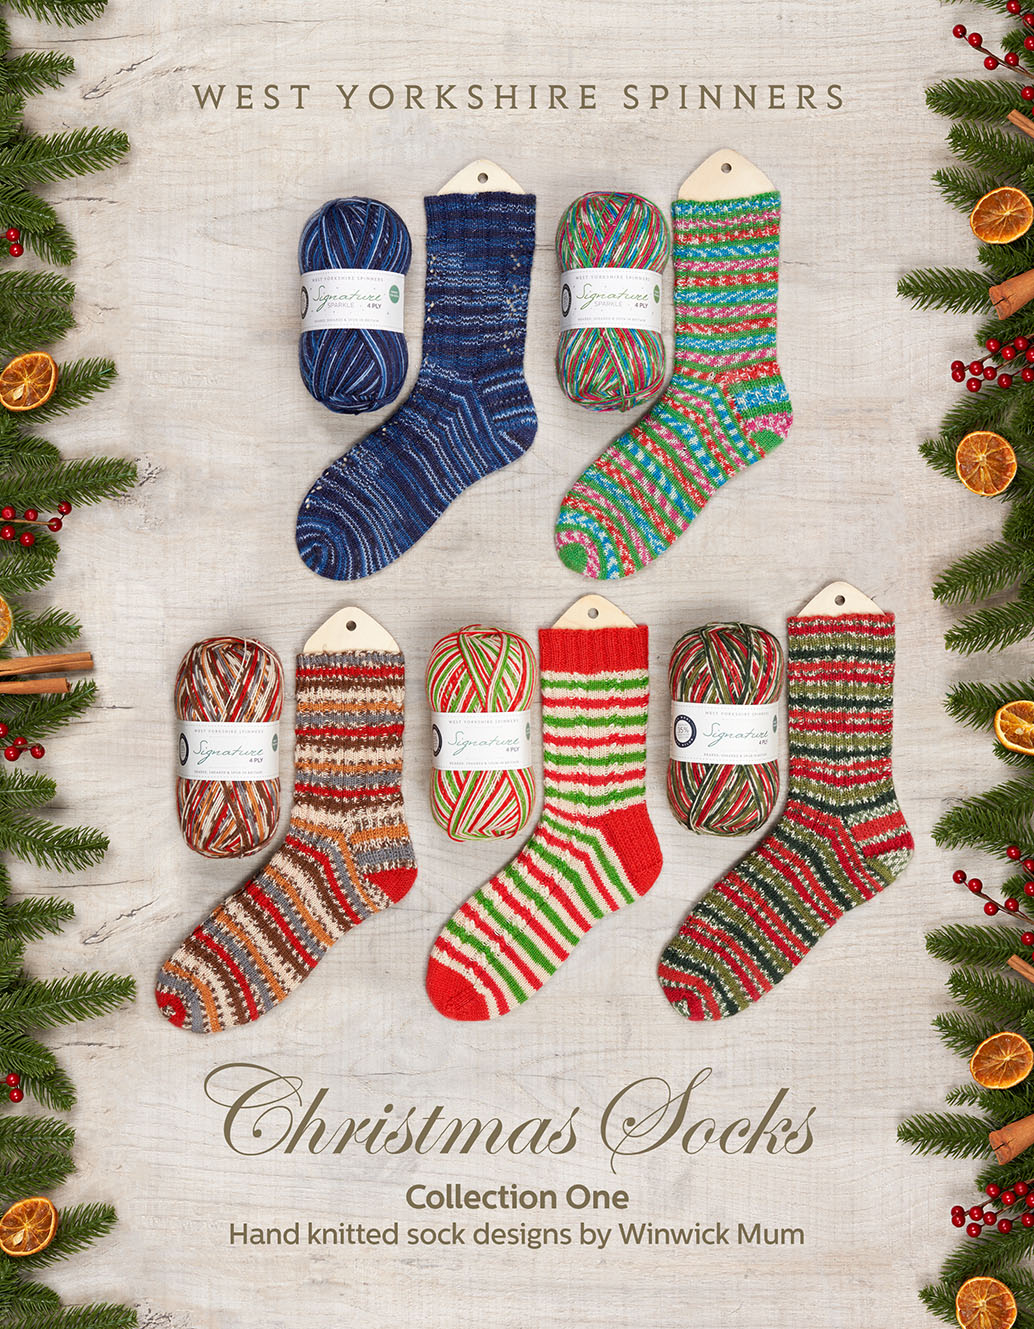 West Yorkshire Spinners Christmas Socks – Collection One : Pattern Book product image